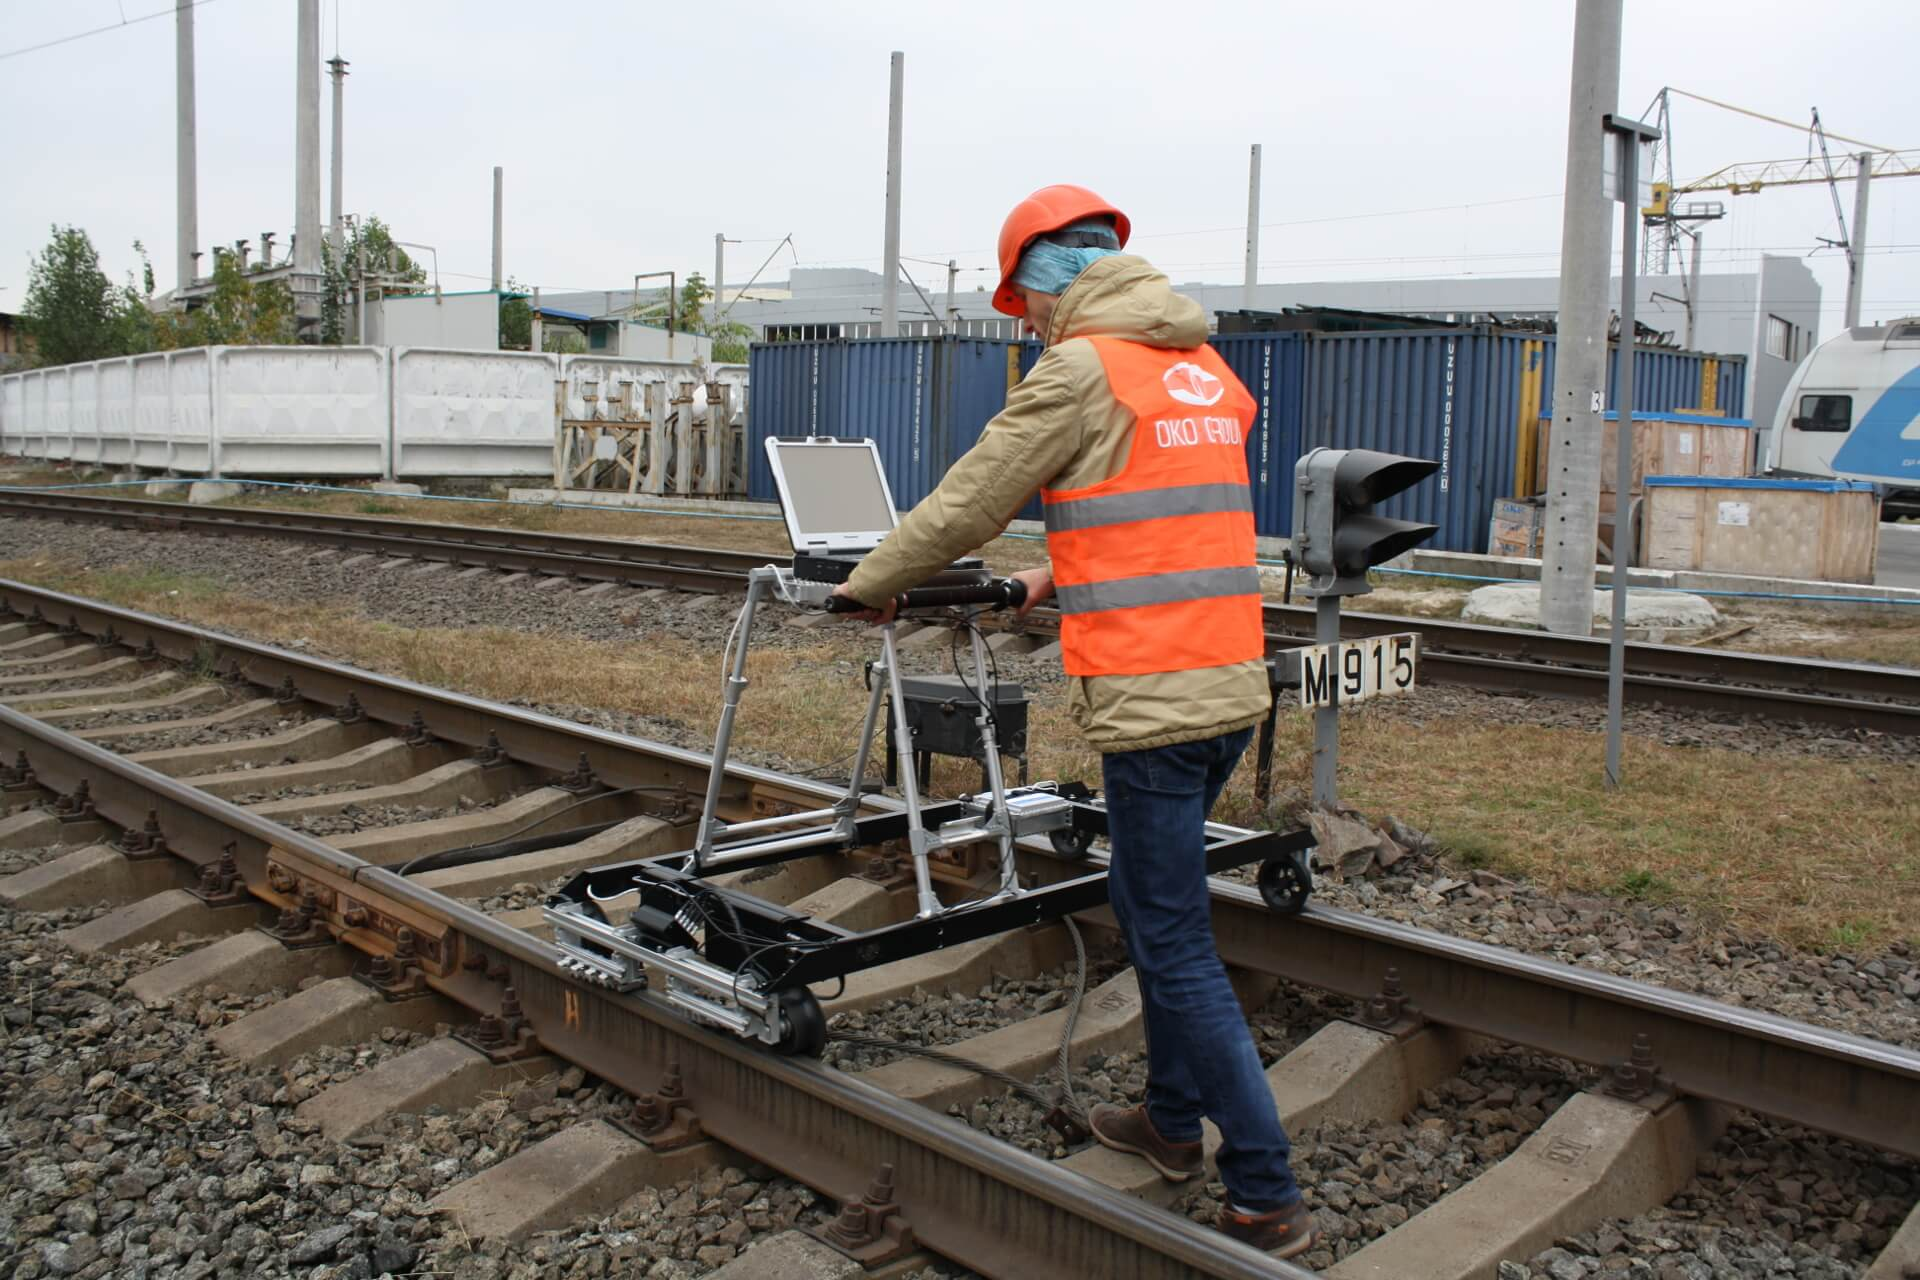 Inspection of the track segment with ETS2-77 flaw detector for gauge corner checking